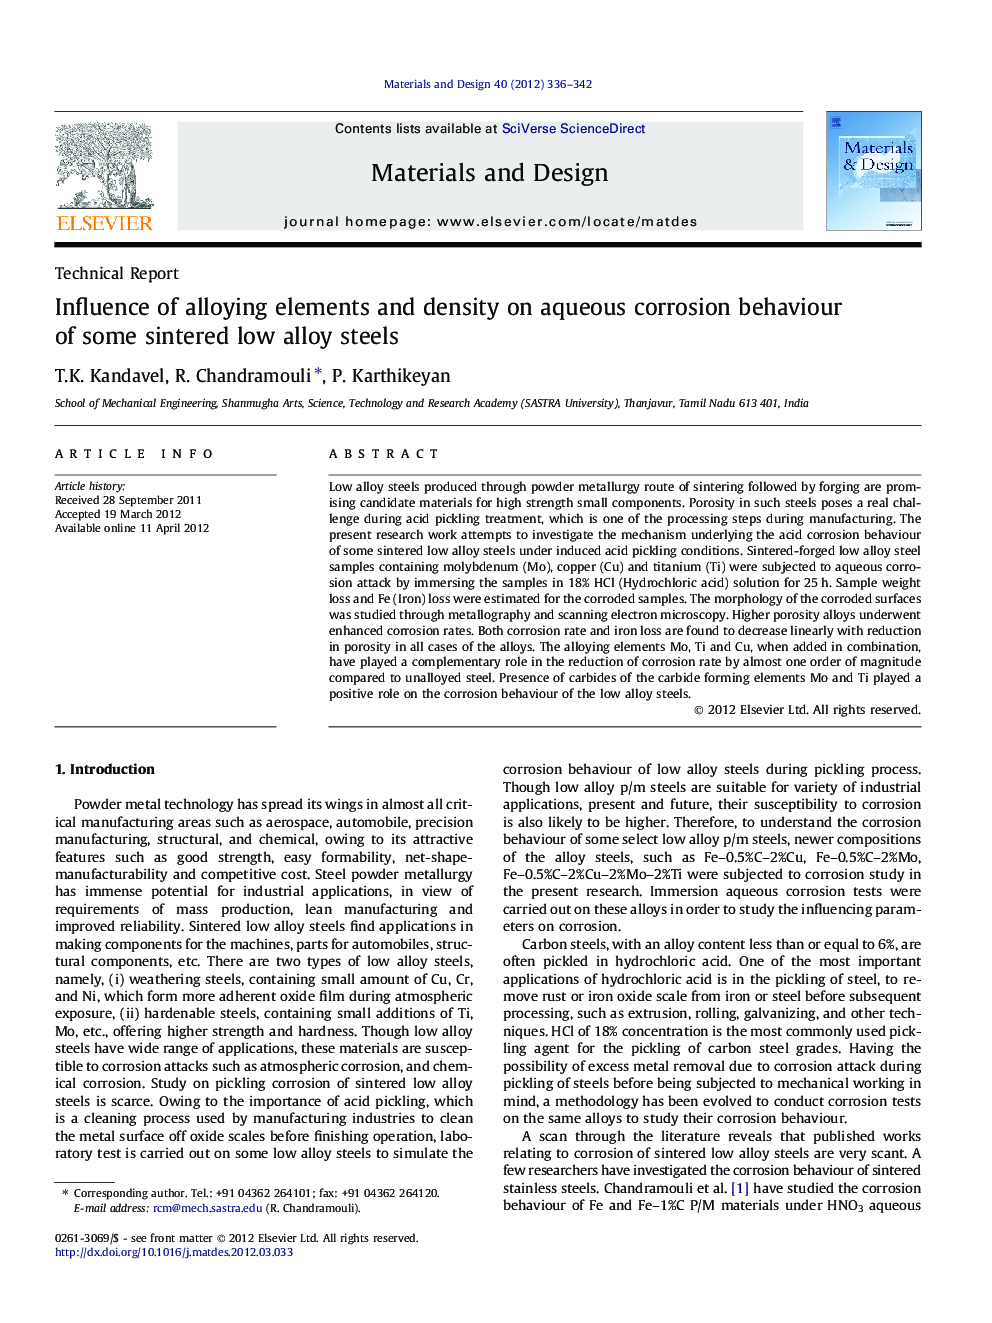 Influence of alloying elements and density on aqueous corrosion behaviour of some sintered low alloy steels